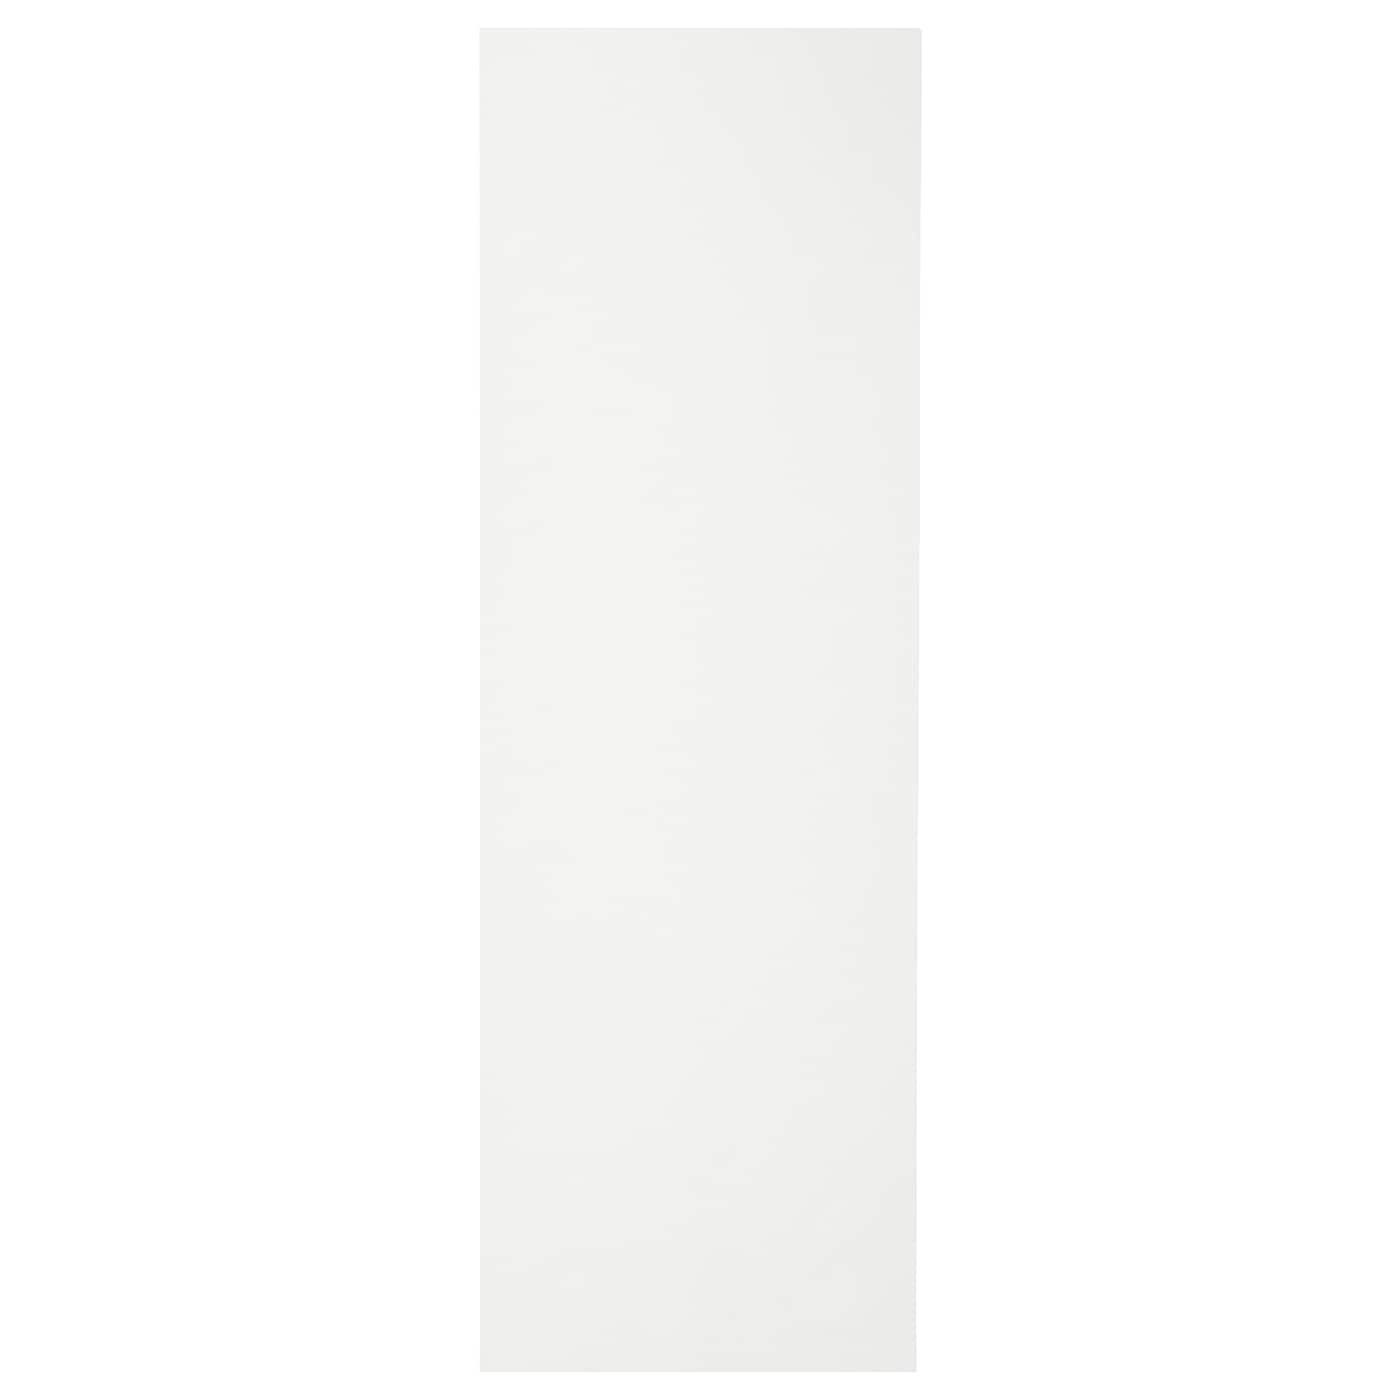 IKEA INGJERD panel curtain Can be easily cut to the desired length without hemming.